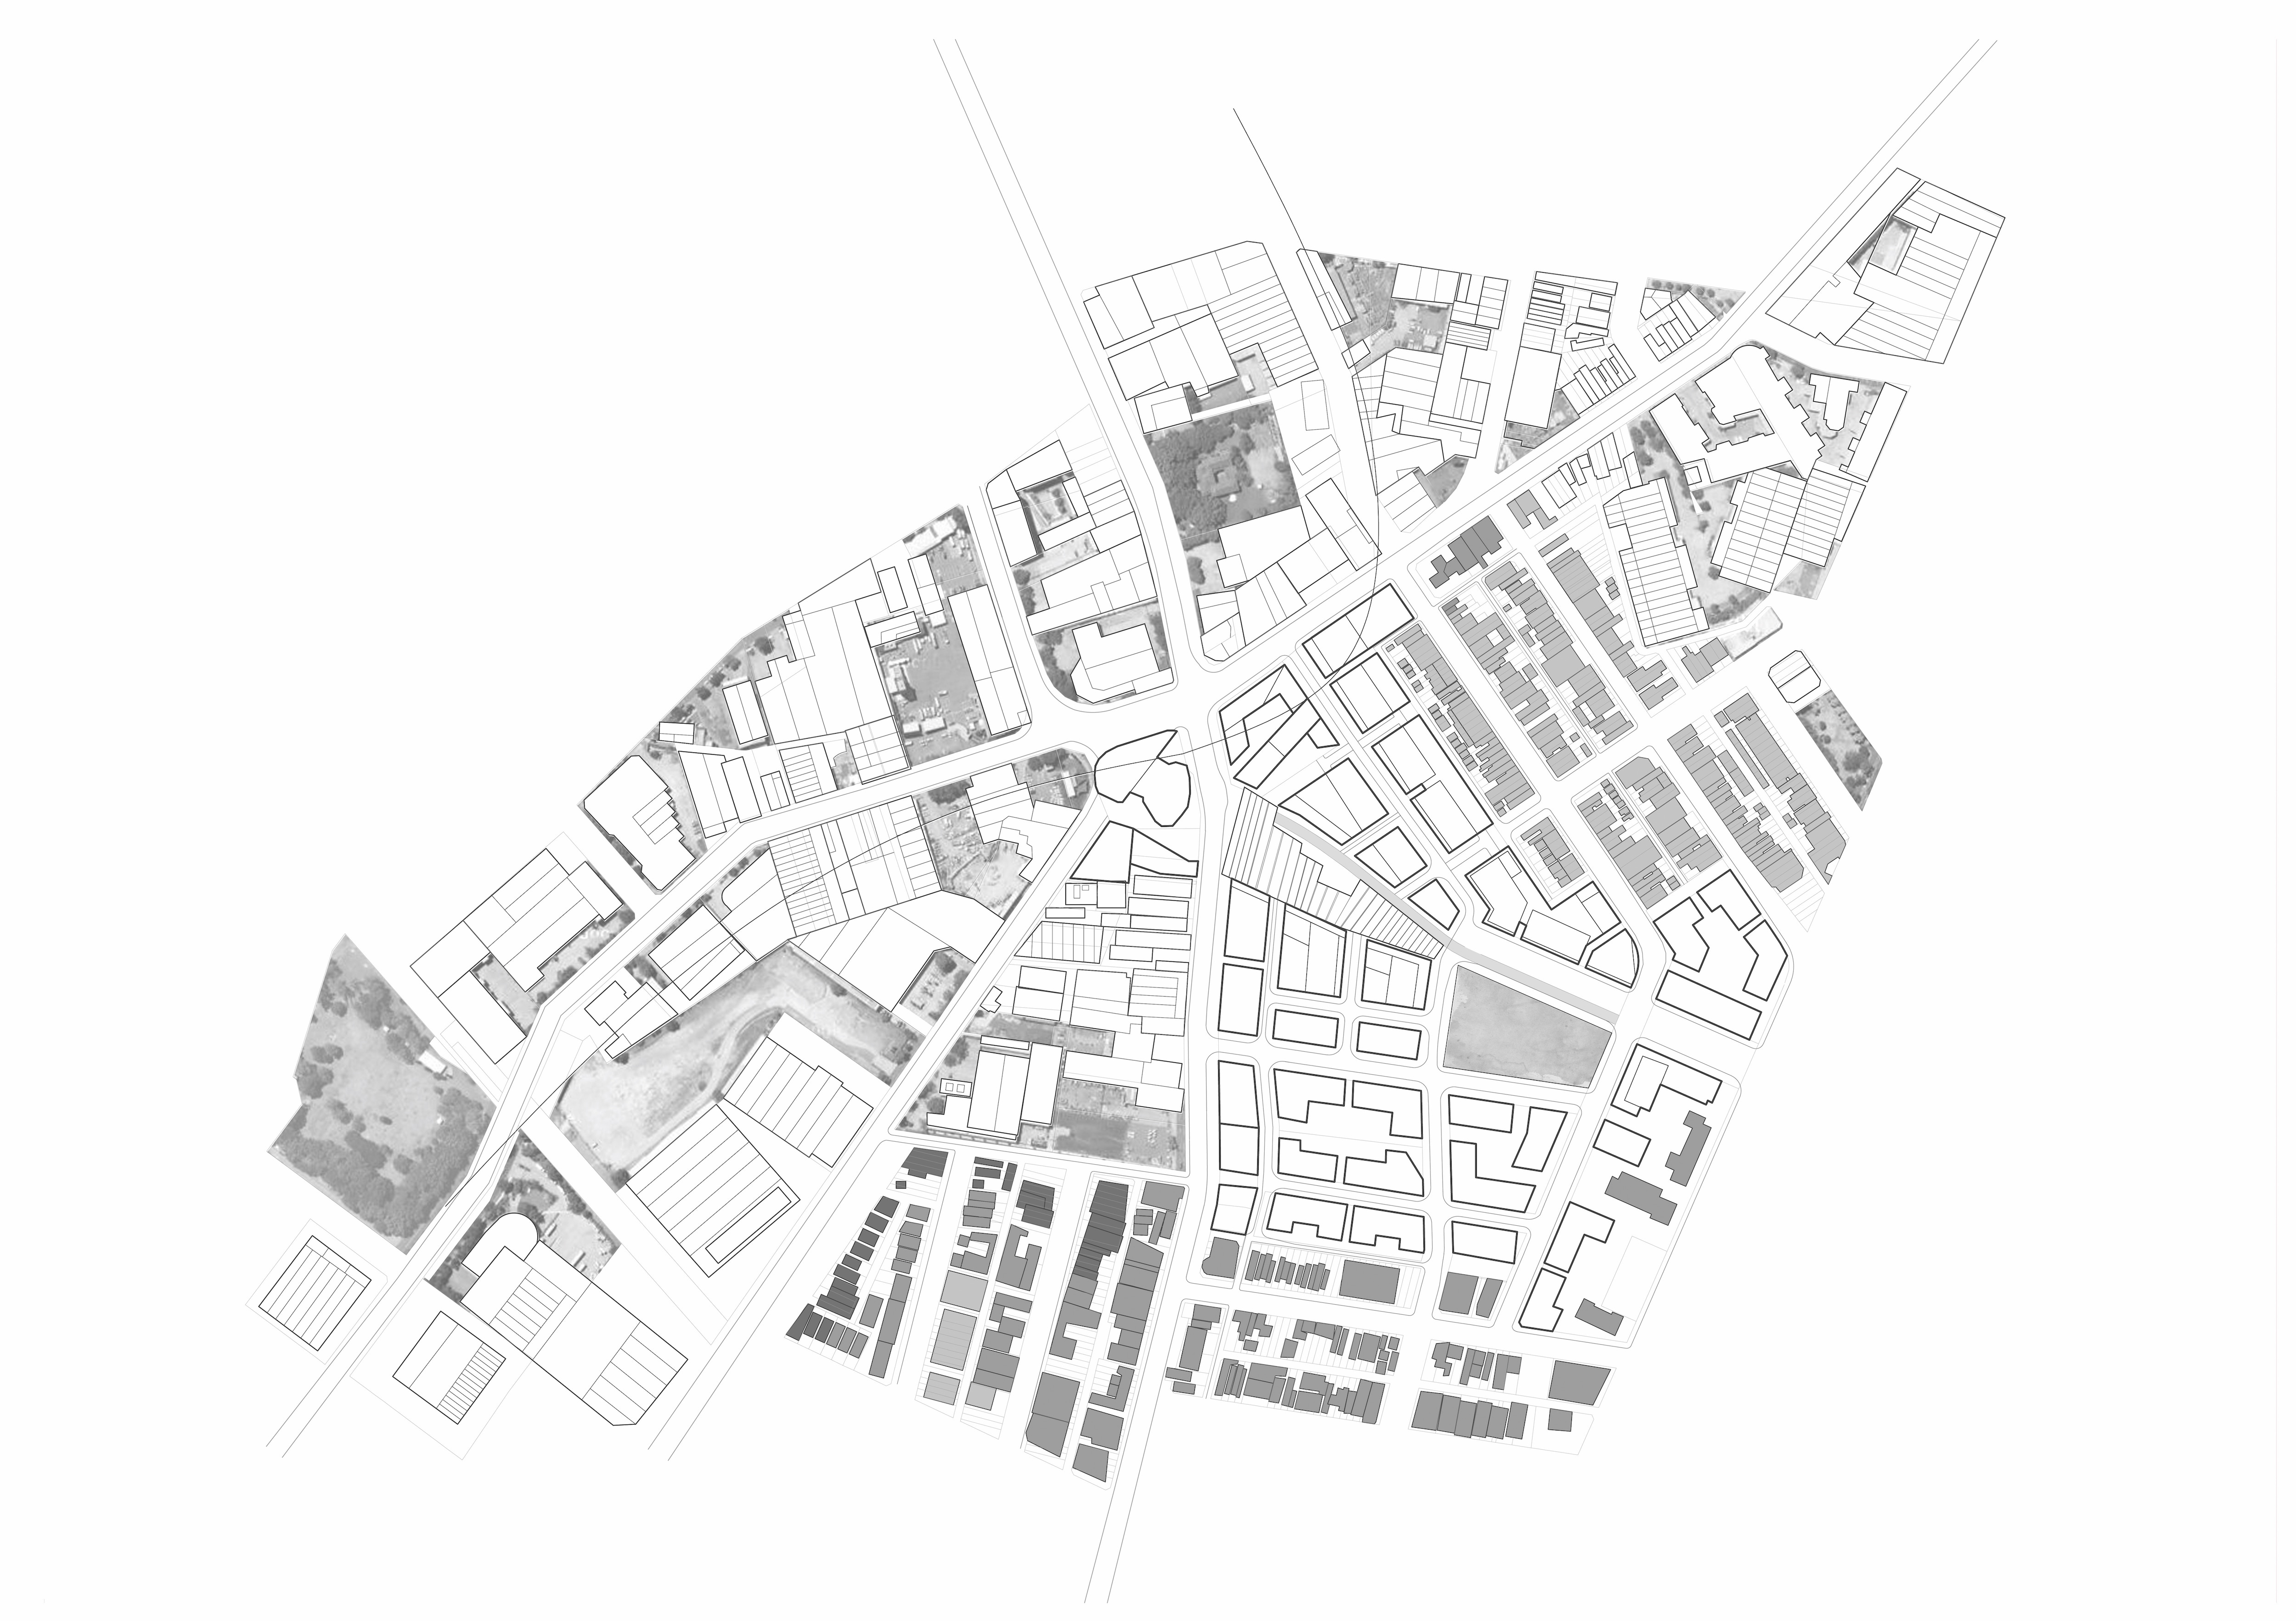 urbanism research the university of sydney school of architecture